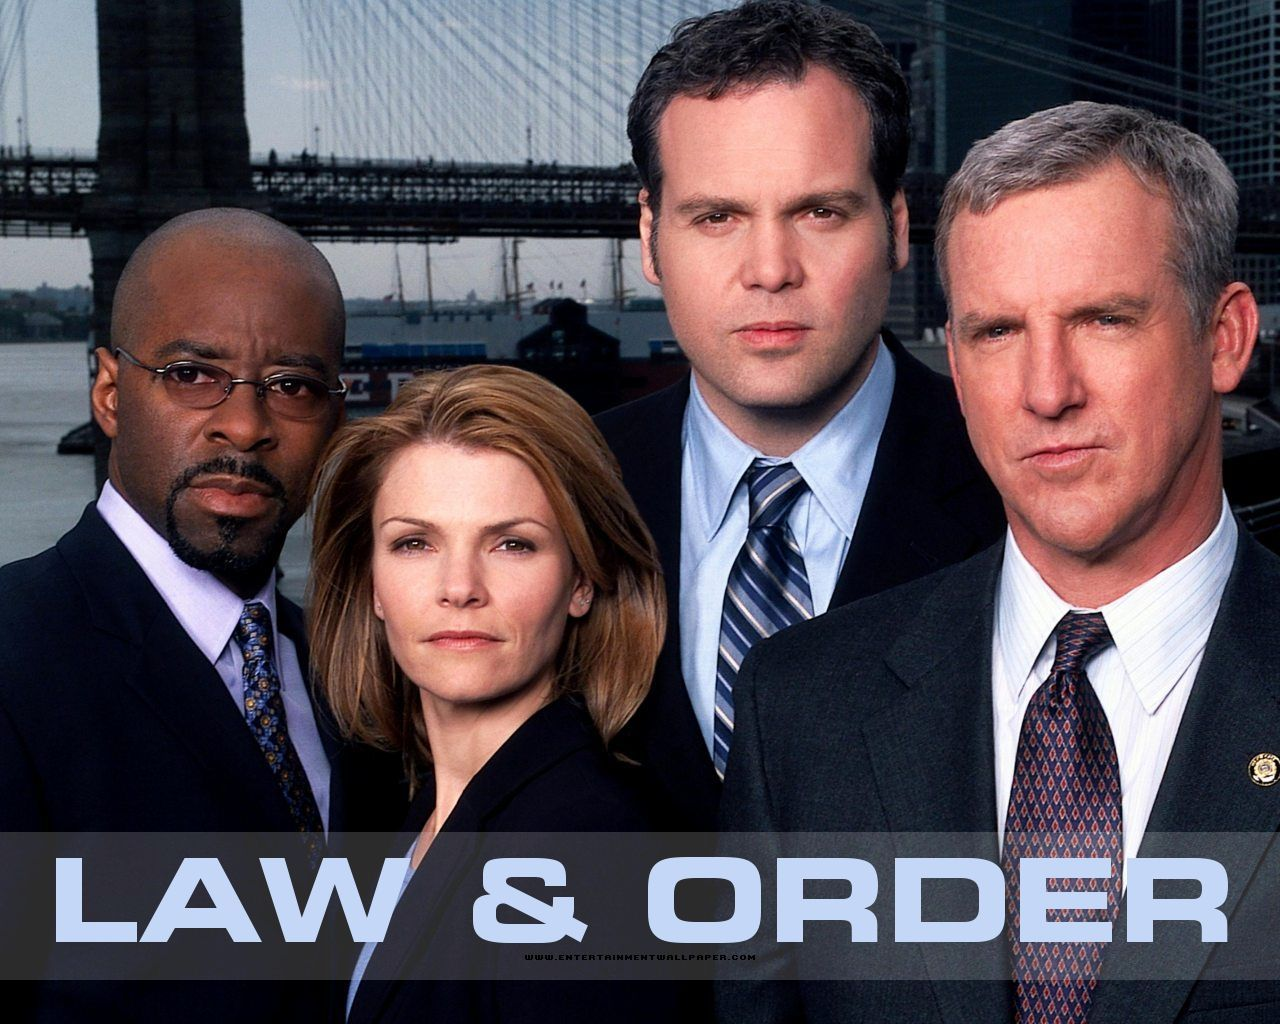 law & order: criminal intent wallpaper - original size, download now